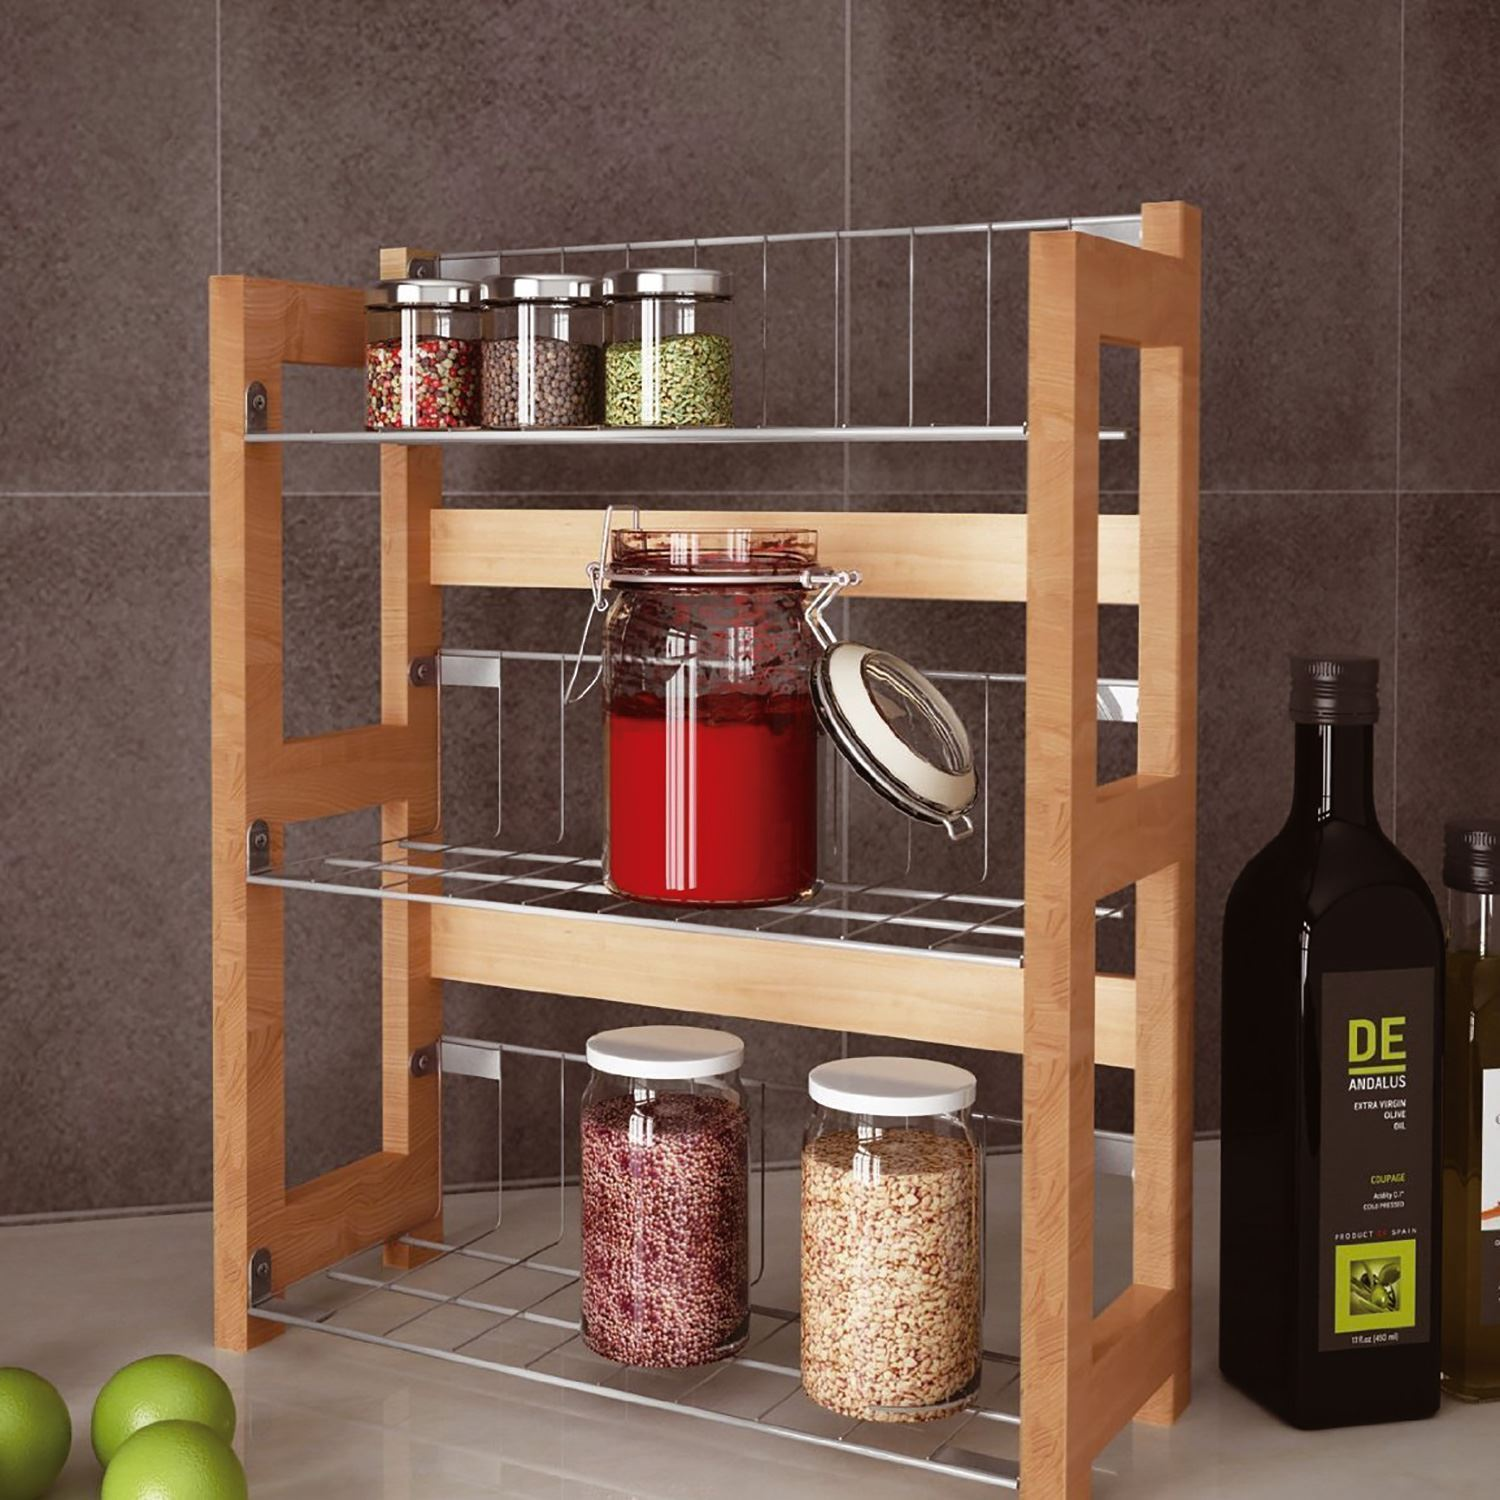 Small Countertop Spice Rack : ... Wall Mounted Standing Spice Jar Rack Kitchen Organiser Tidy eBay